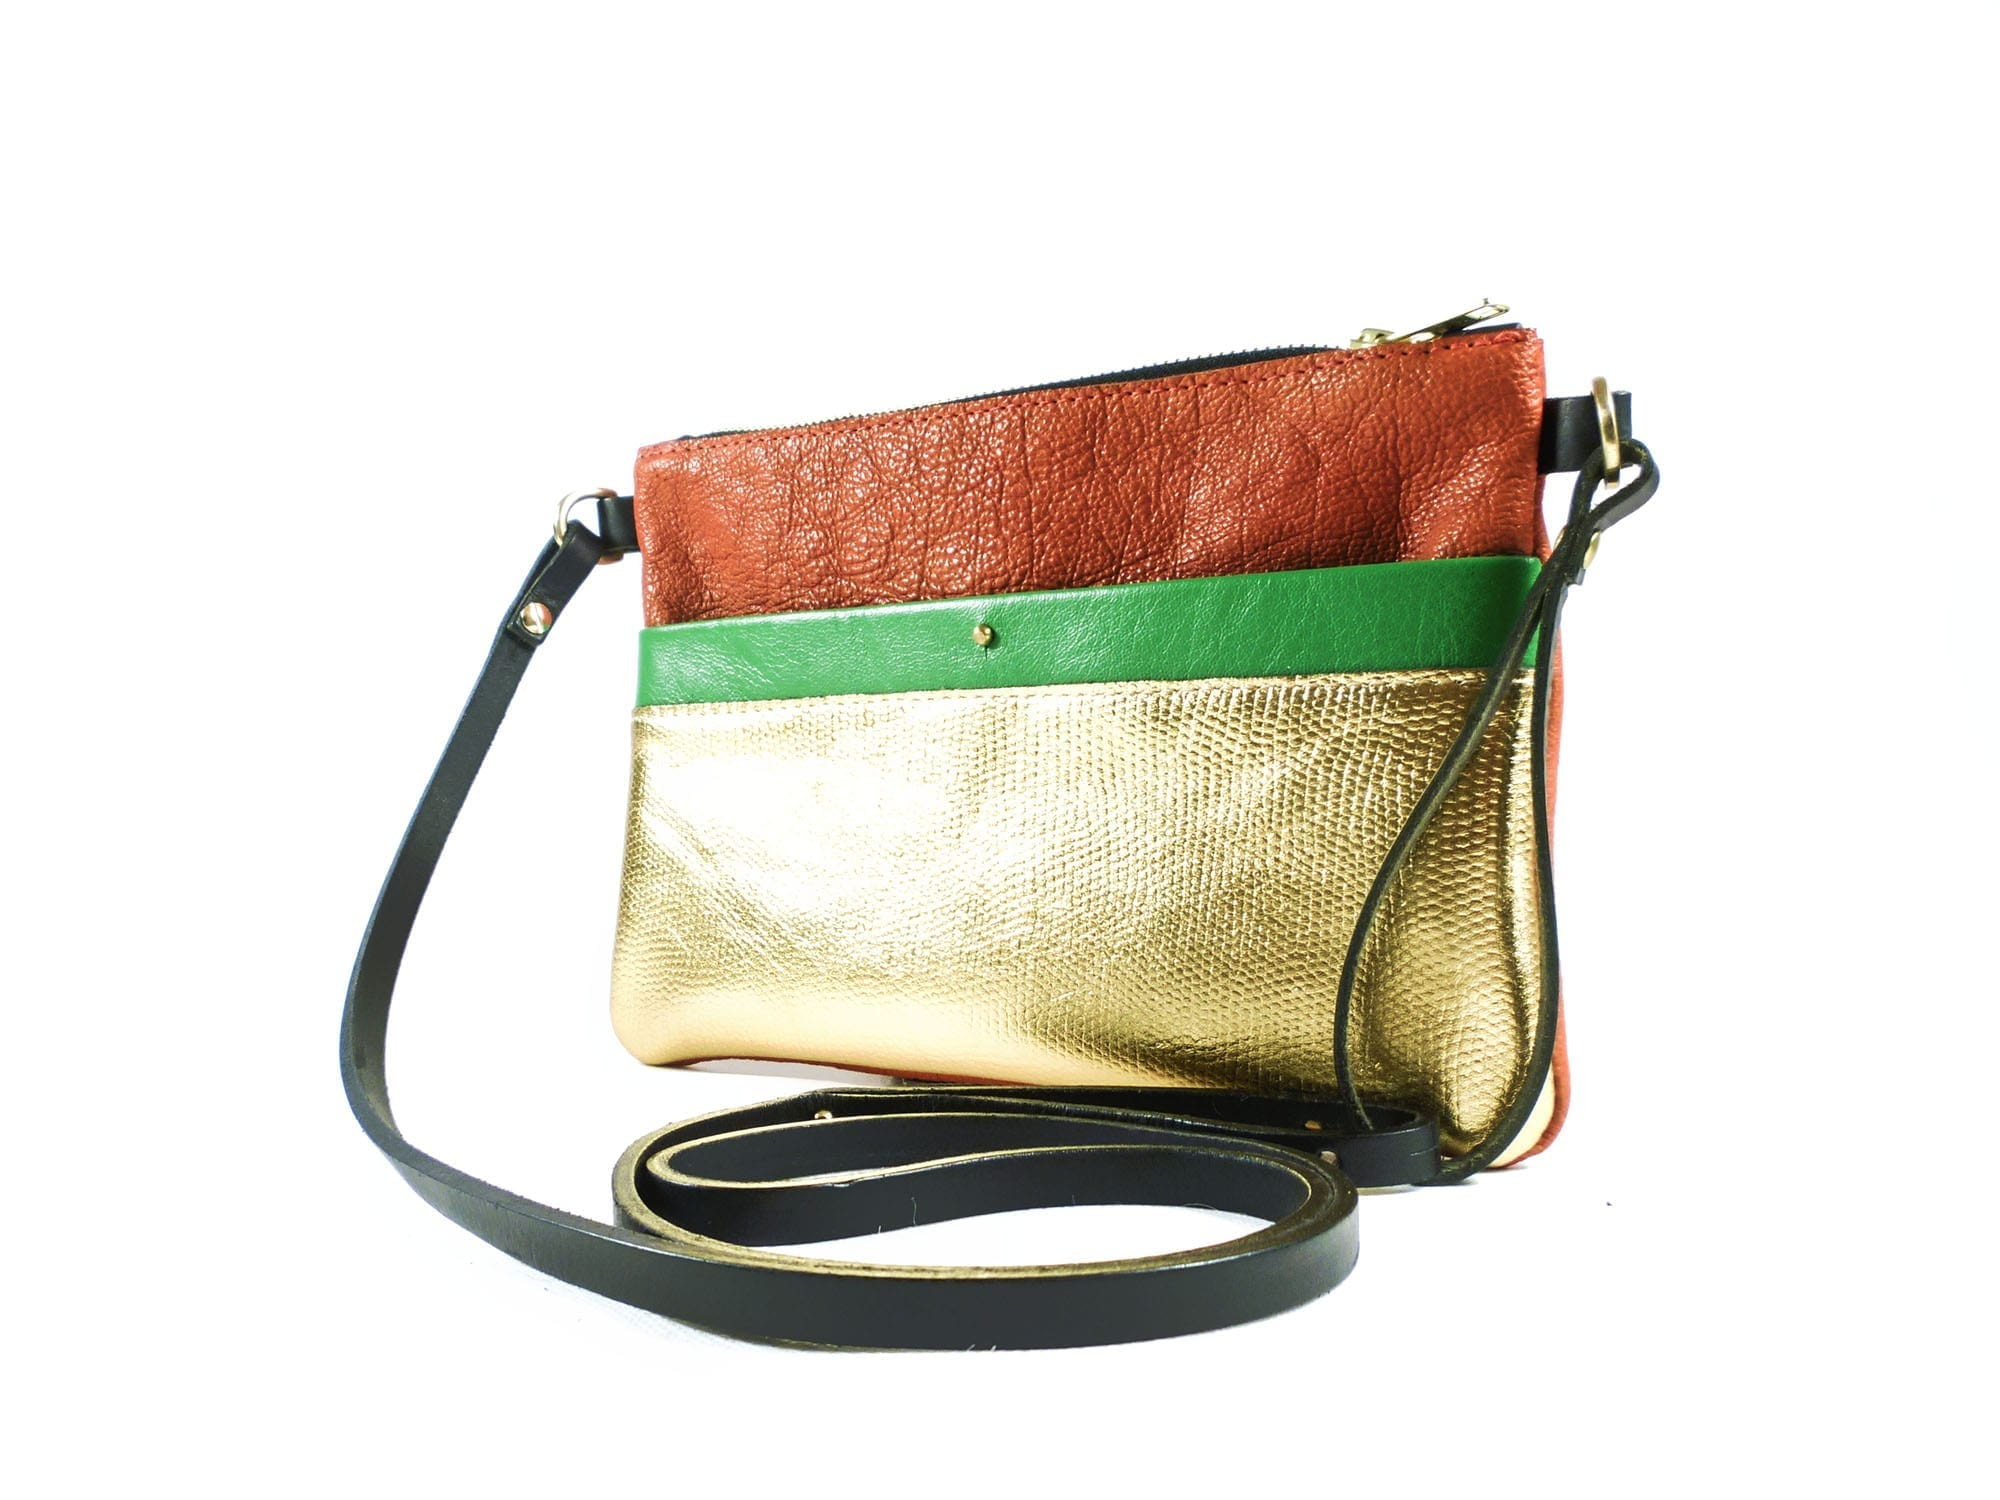 Ava Clutch Bag - Red, Gold, Green (with detachable strap) | Karing ...